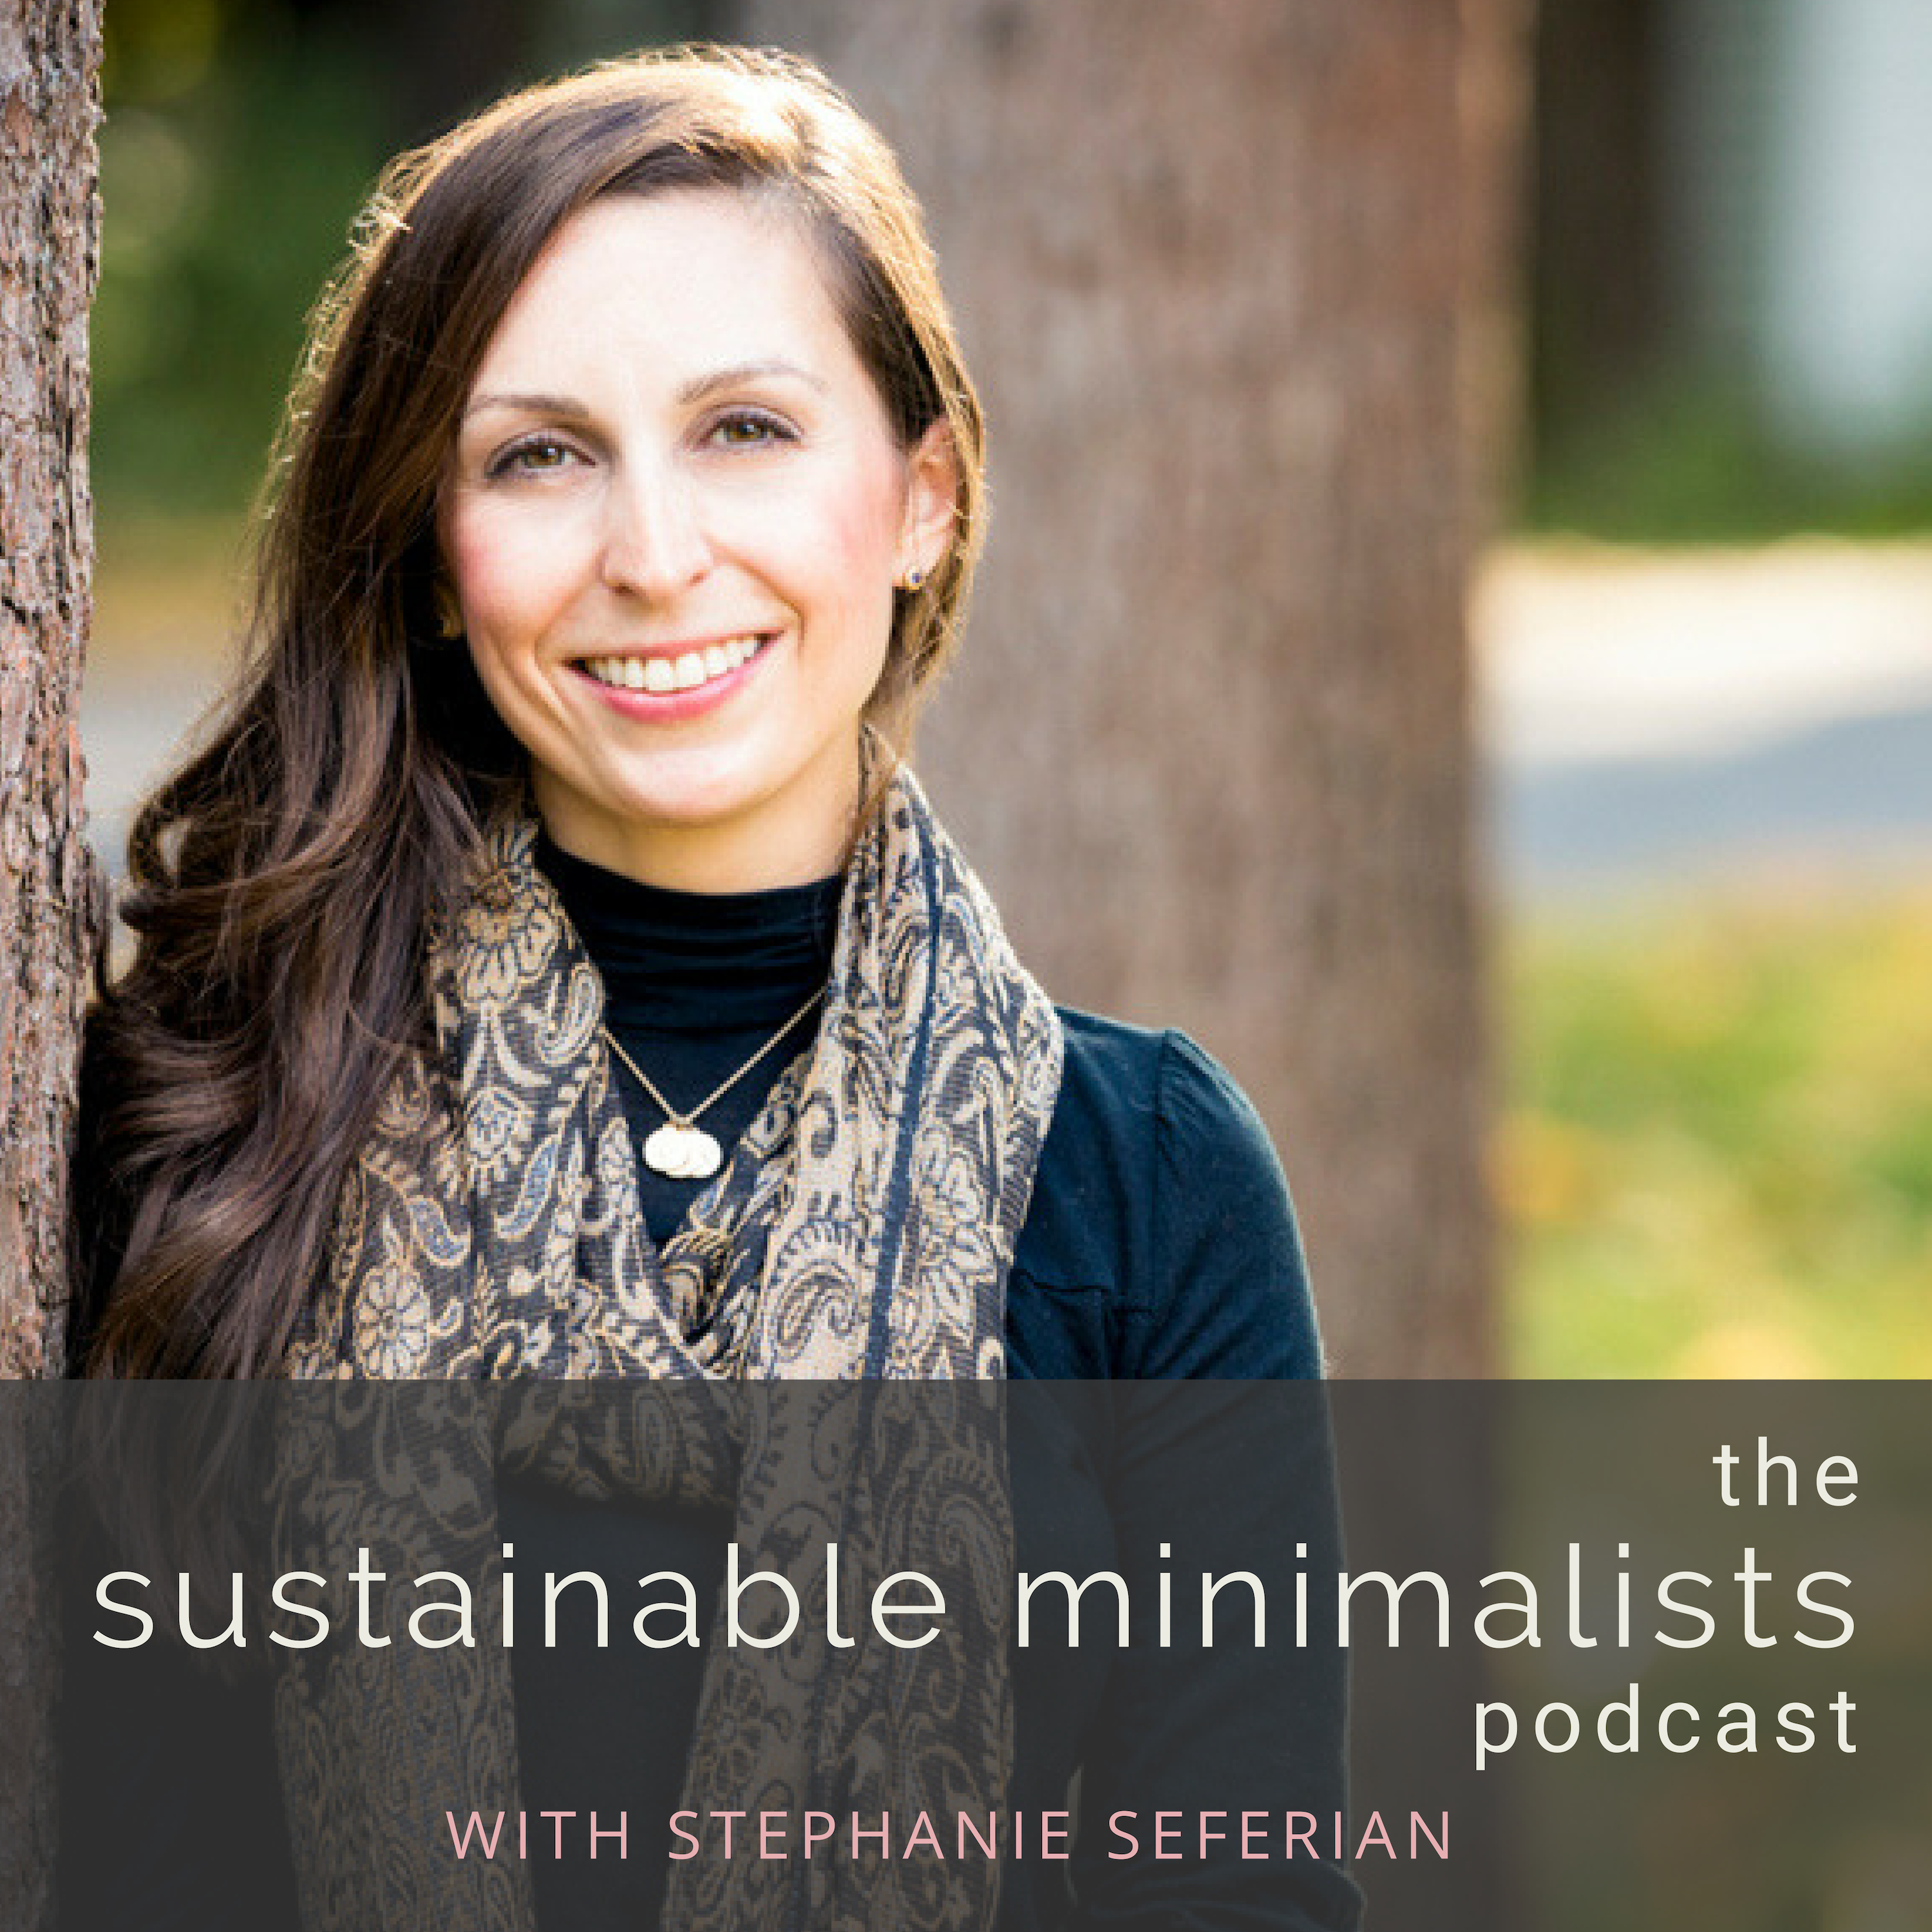 The Sustainable Minimalists Podcast: Eco-Friendly Families | Simple Living + Parenting